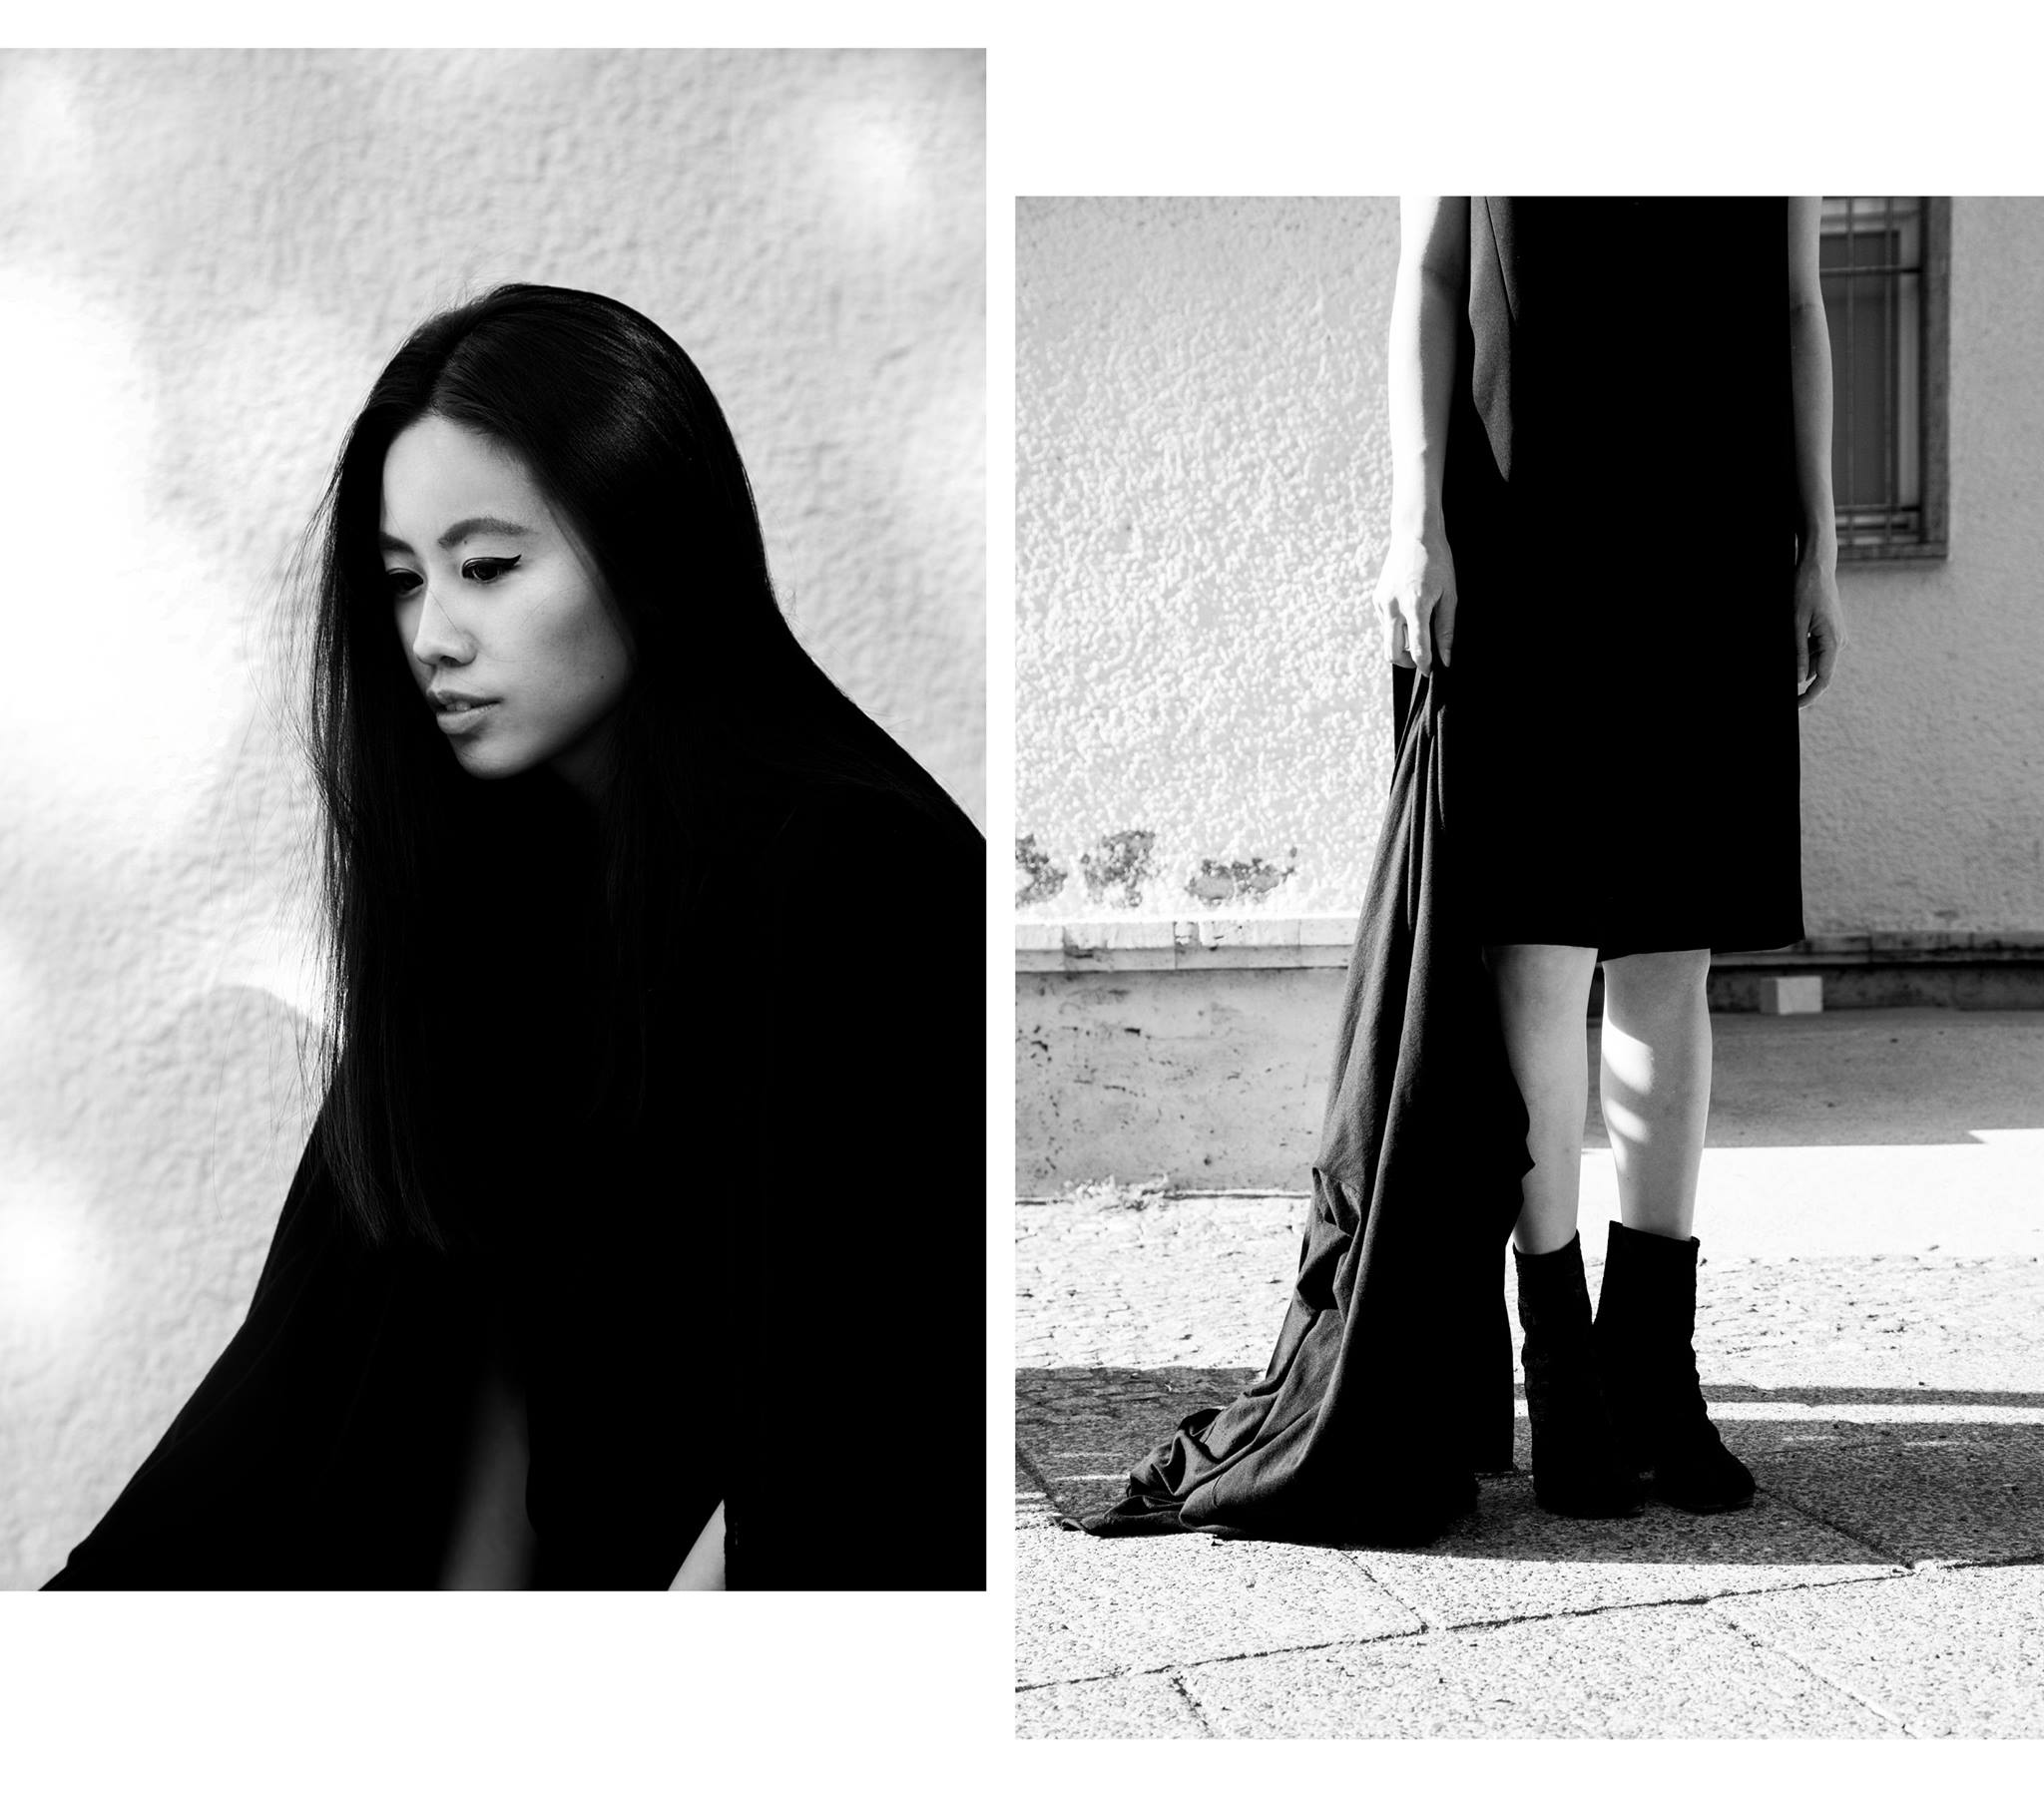 I HEART ALICE – Fashionblog from Germany: Alice M. Huynh wearing Karl Lagerfeld black Jumpsuit, Maison Martin Margiela Tabi Boots, Yohji Yamamoto Cardigan